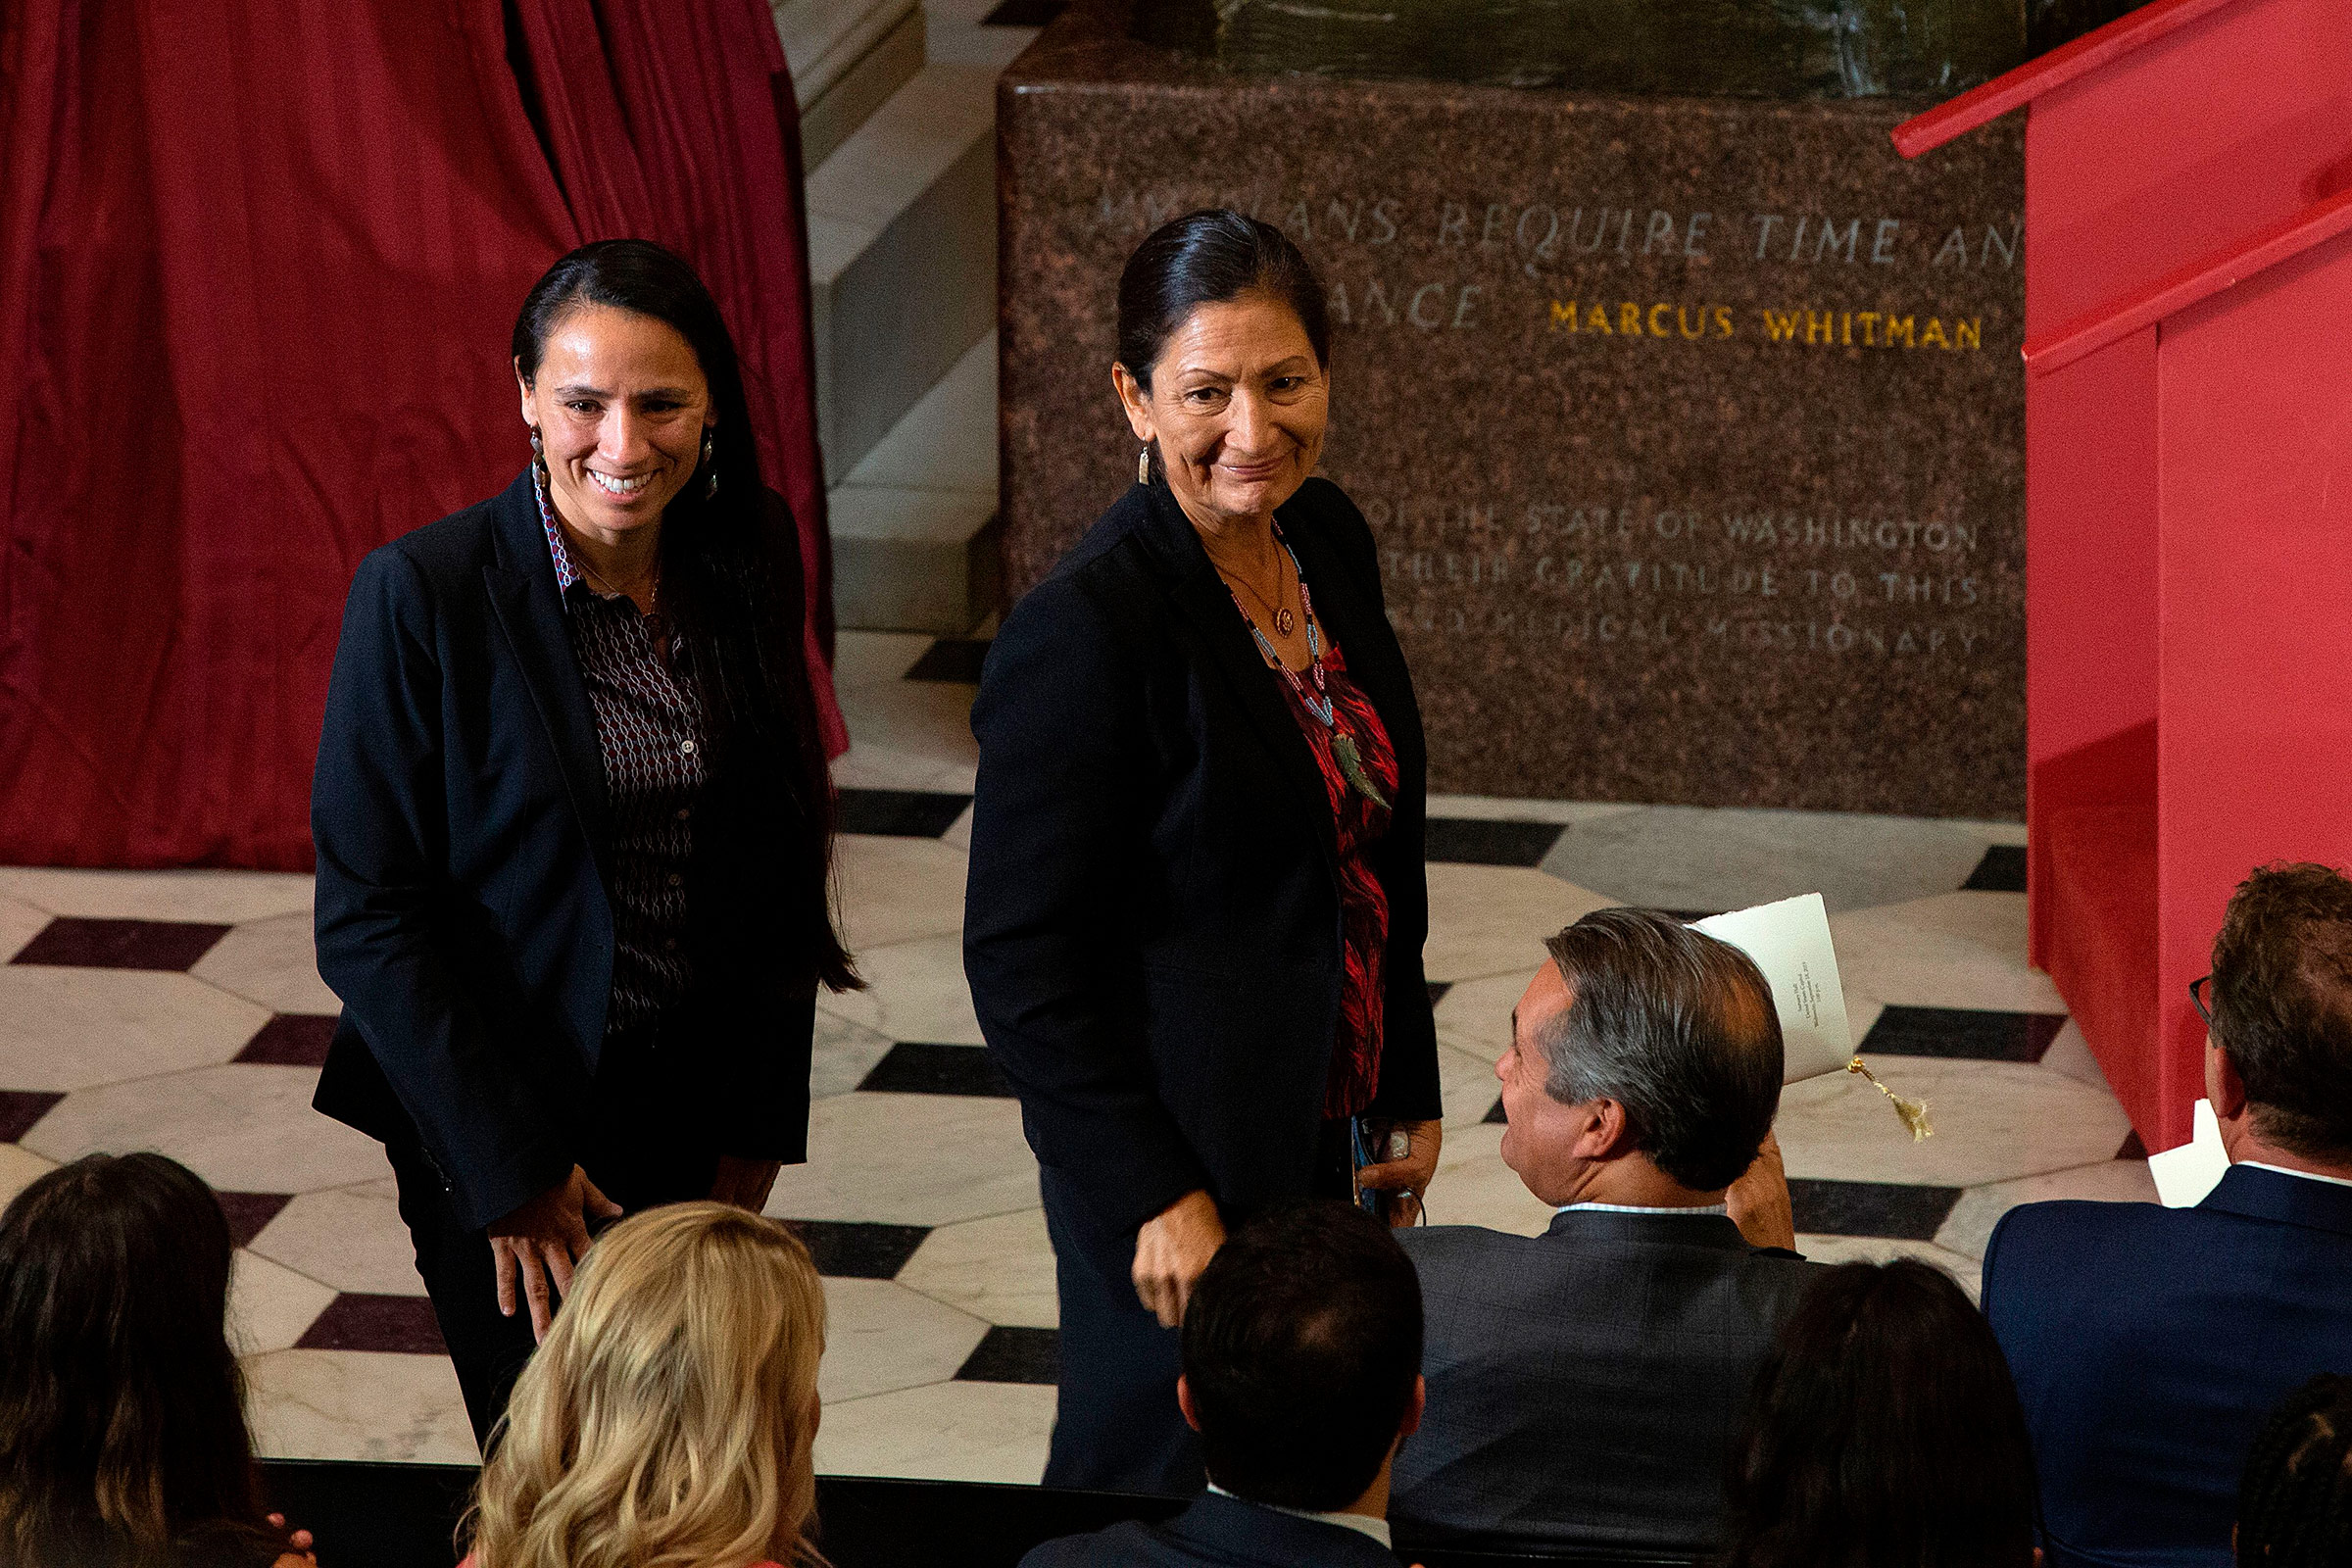 U.S. Representatives Sharice Davids, left, and Deb Haaland are recognized as the first Native American women elected to Congress during a dedication and unveiling ceremony for a statue of Ponca Chief Standing Bear of Nebraska on Capitol Hill in Washington, DC, on Sept. 18, 2019.